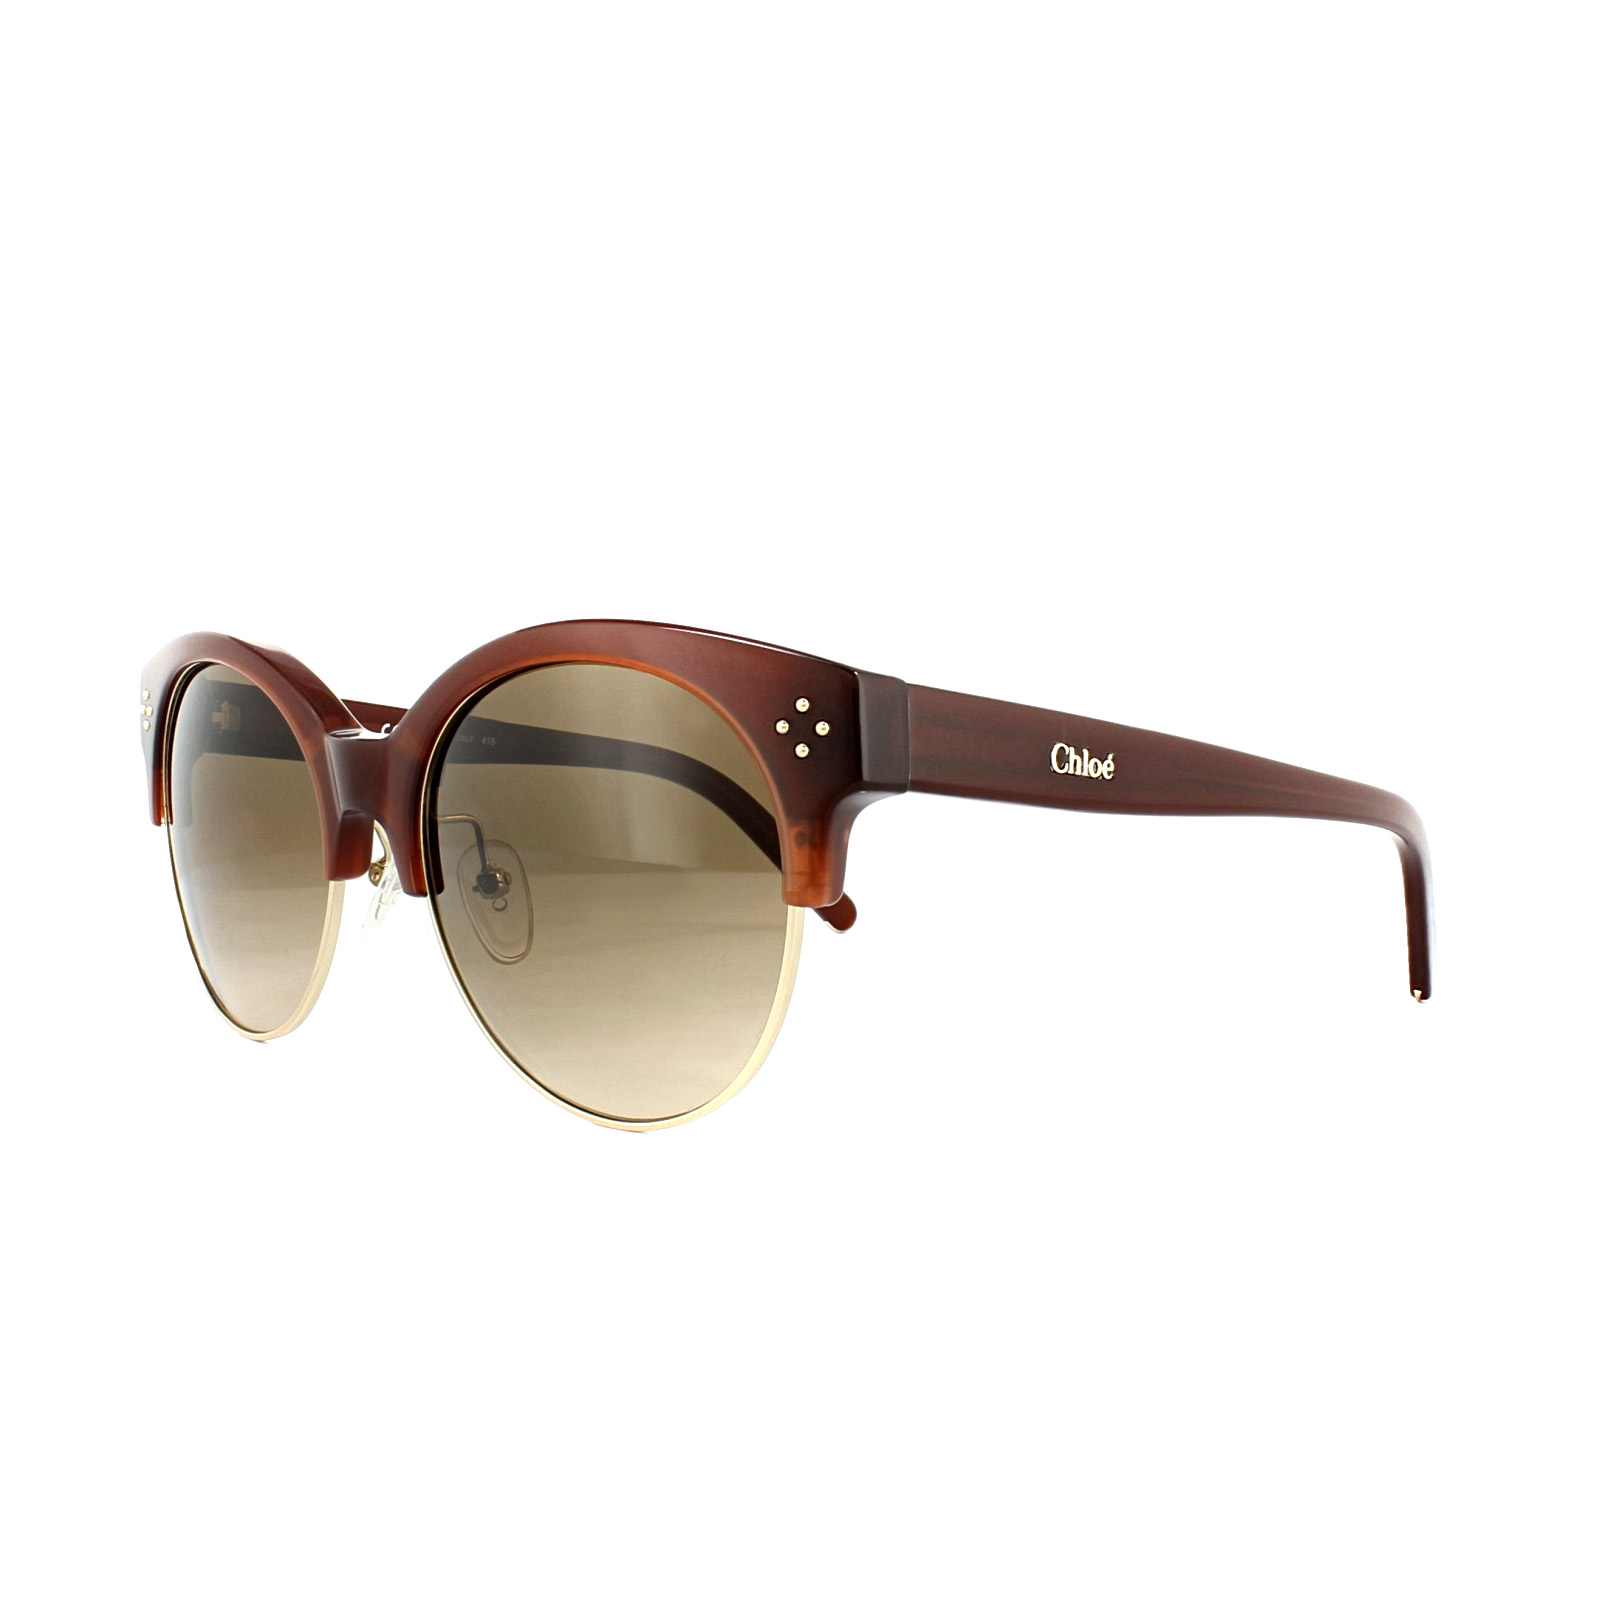 969803f3e1 Details about Chloe Sunglasses CE704S Boxwood 208 Caramel Gold Brown  Gradient